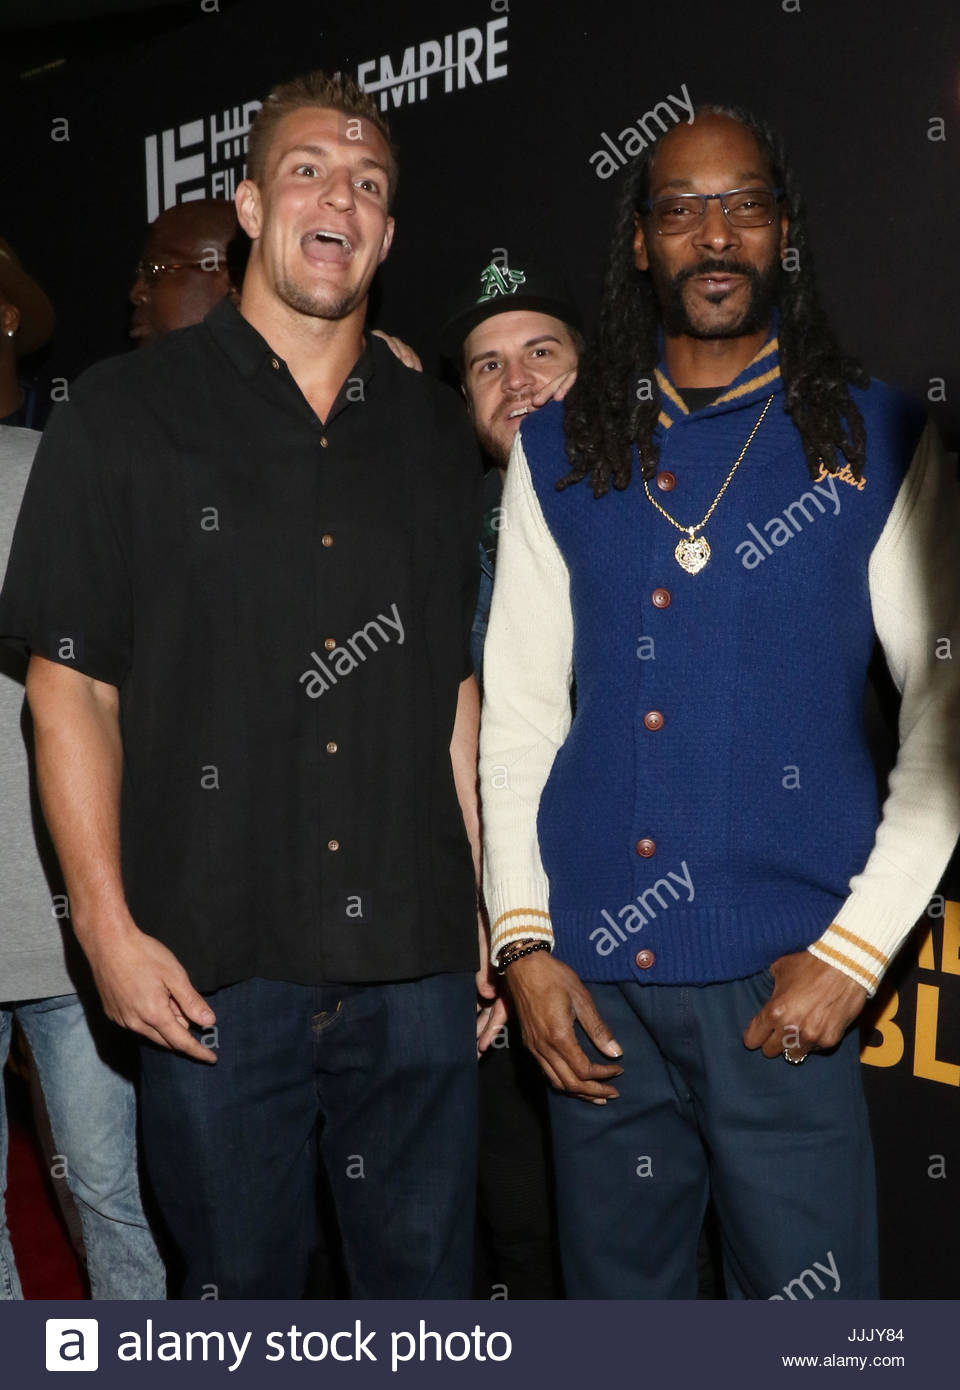 Snoop dogg gronk meet the blacks staring mike epps mike tyson meet the blacks staring mike epps mike tyson gary owen the red carpet arrivals had snopp dogg jamie foxx derek fisher gloria govan and many more m4hsunfo